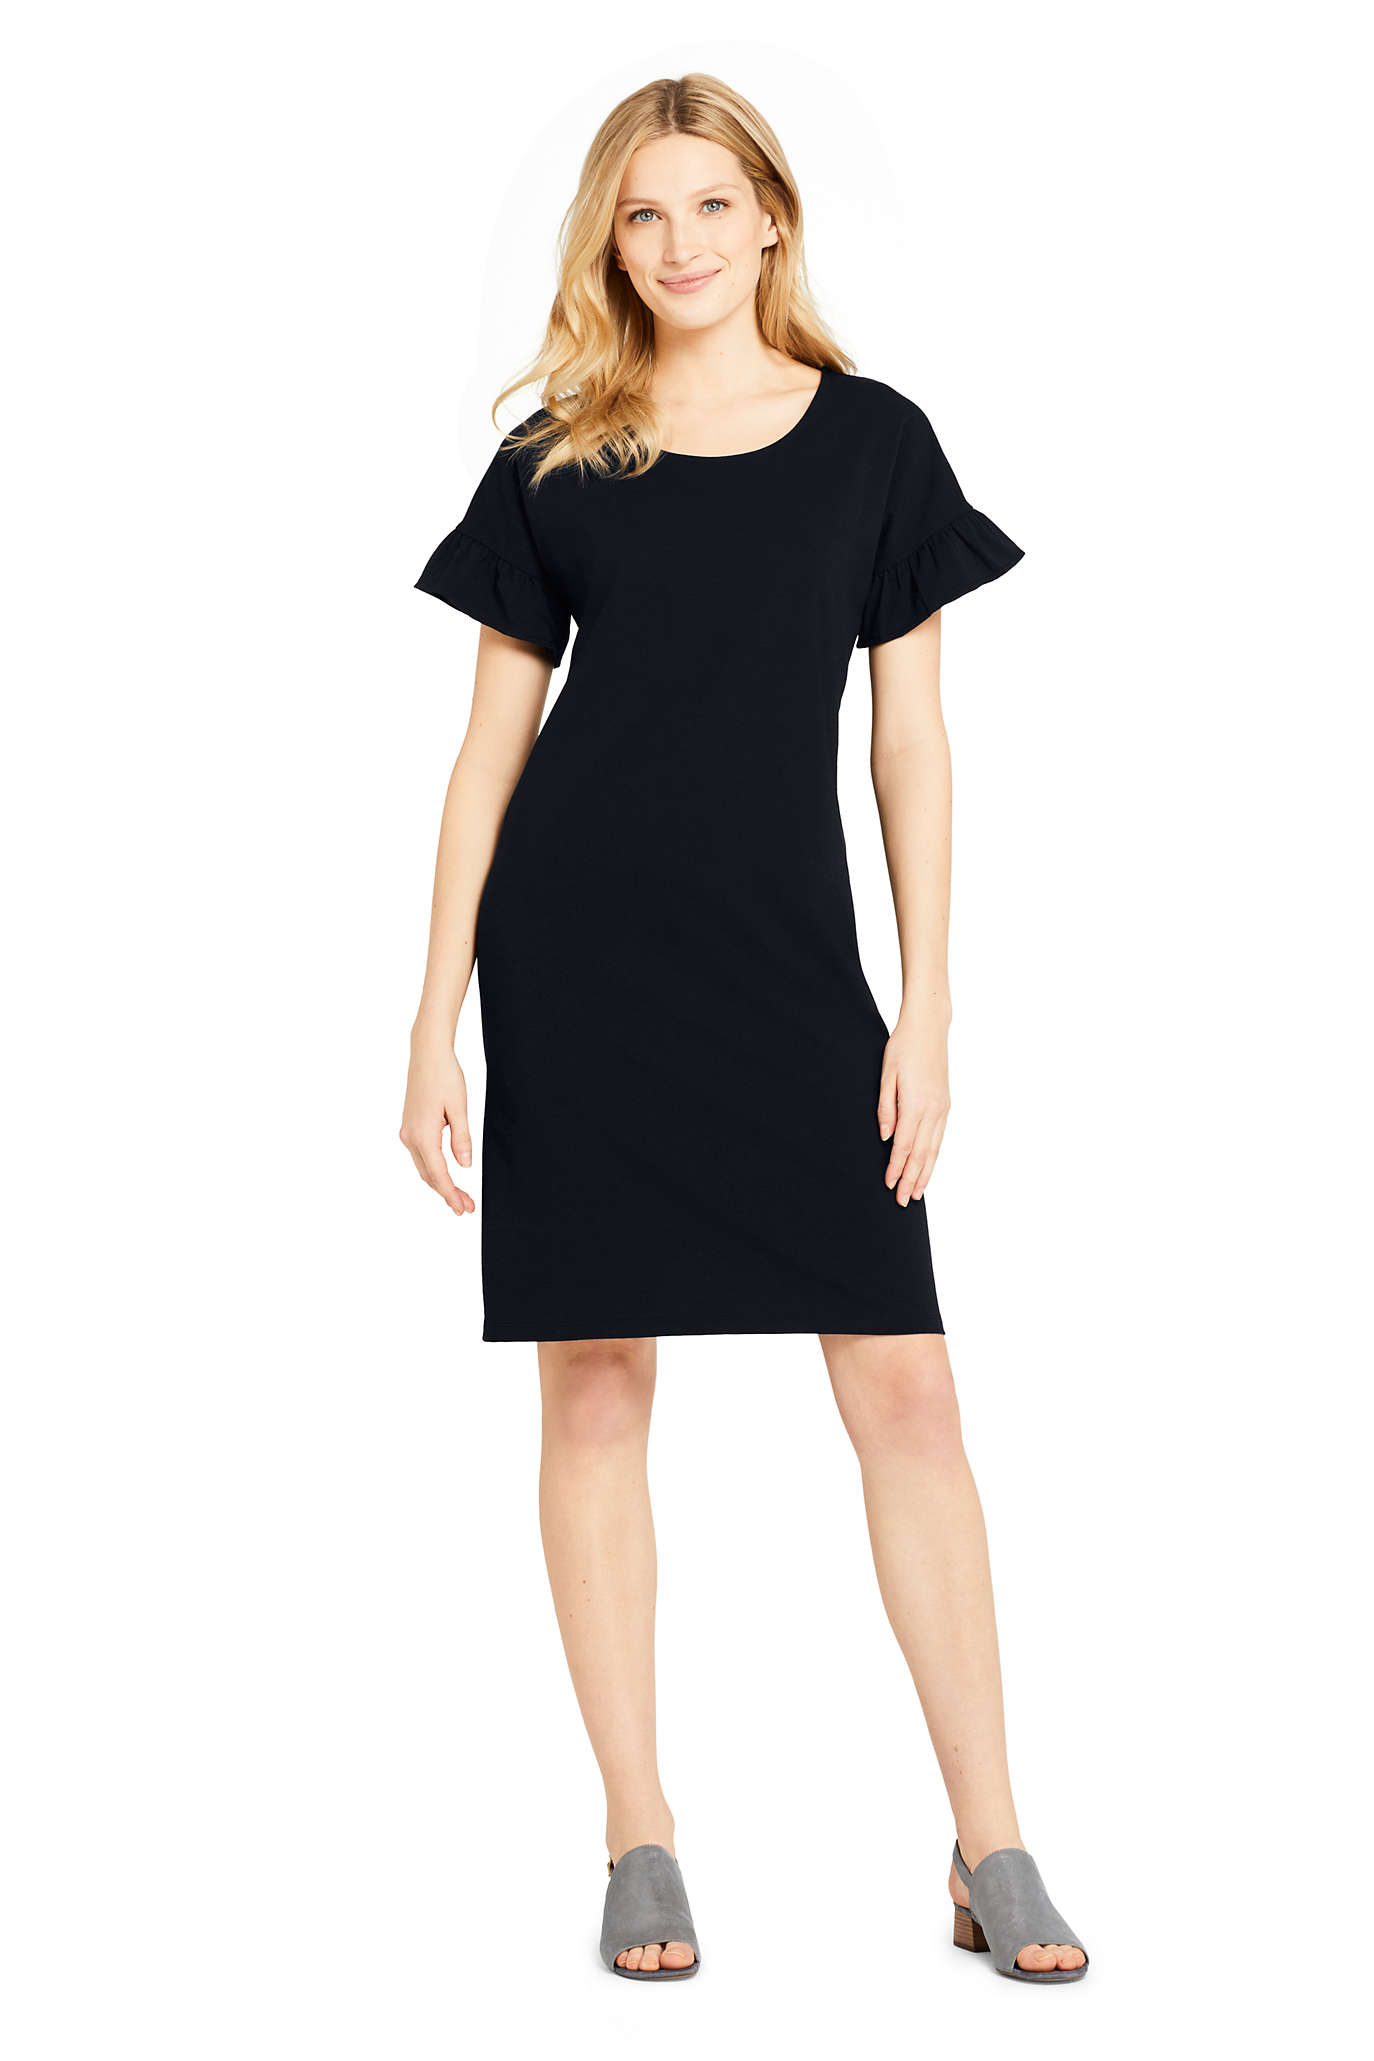 Women's Cotton Blend 3/4 Sleeve T-Shirt Dress